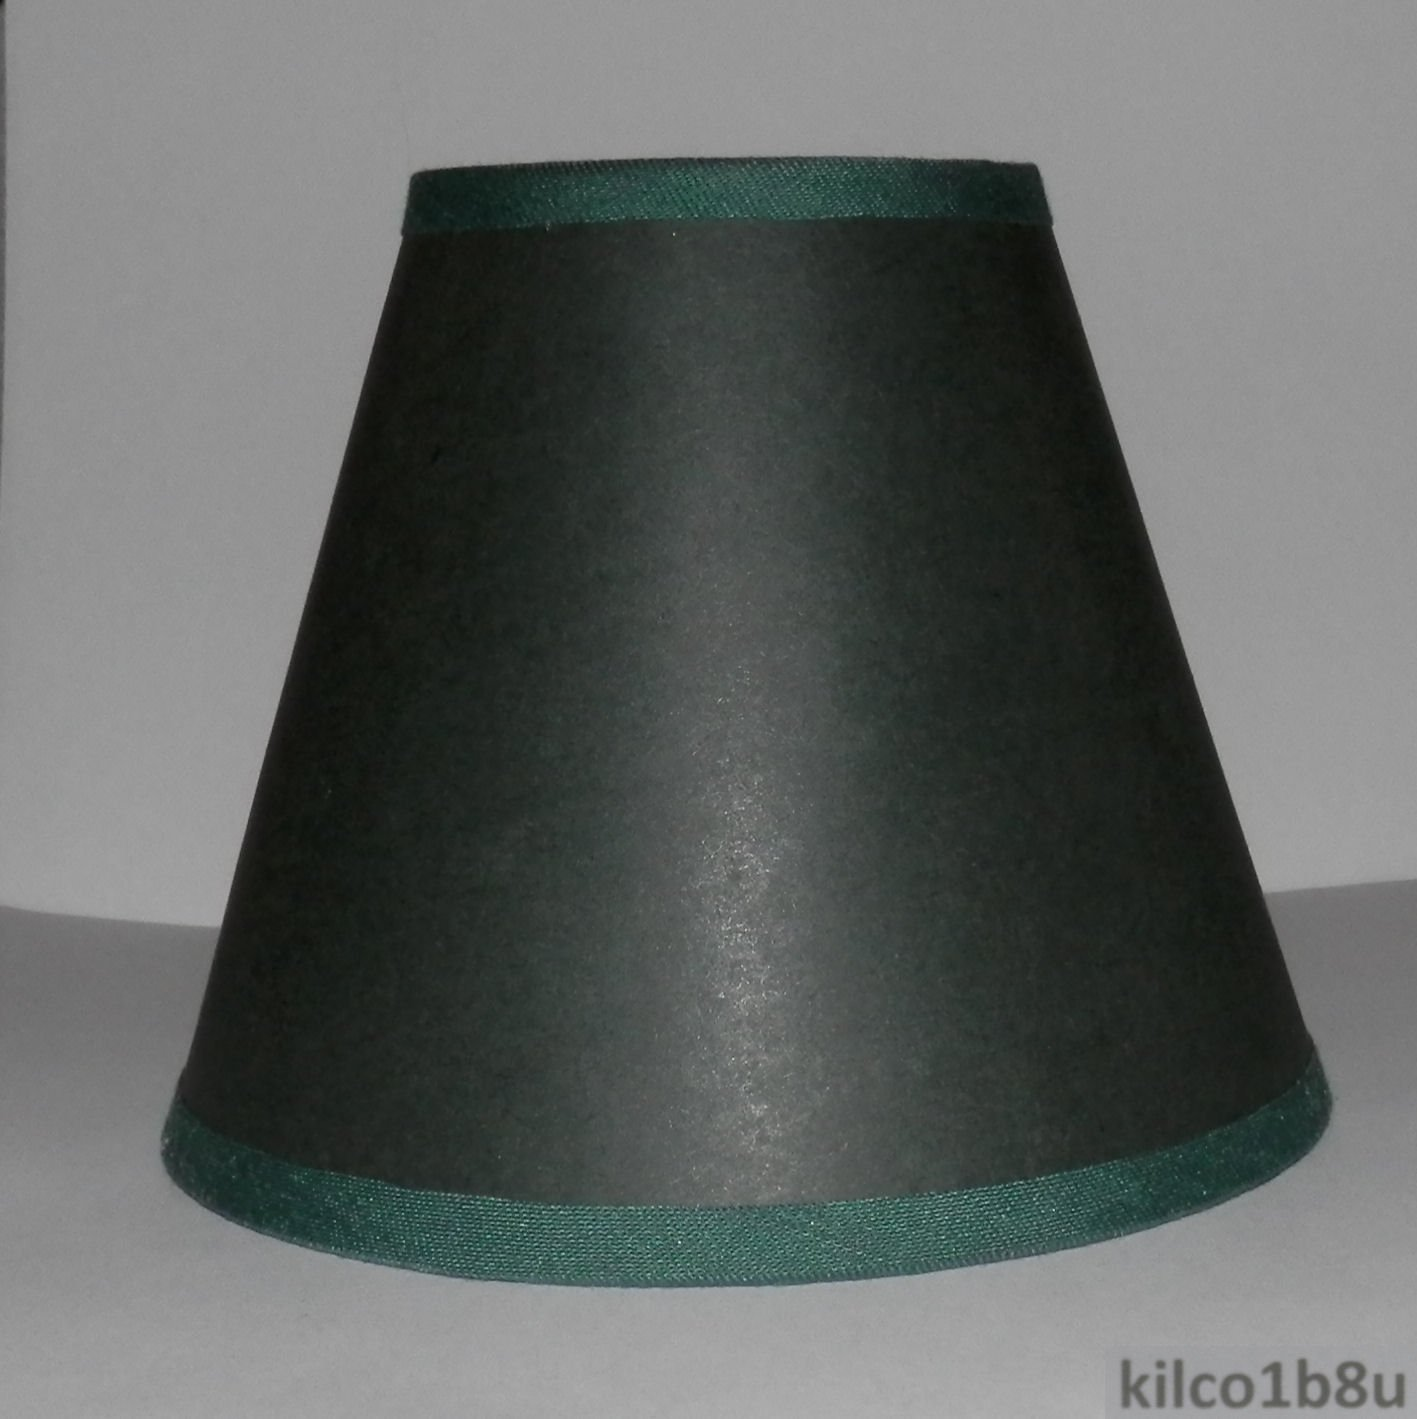 New Green Paper Mini Chandelier Lamp Shade